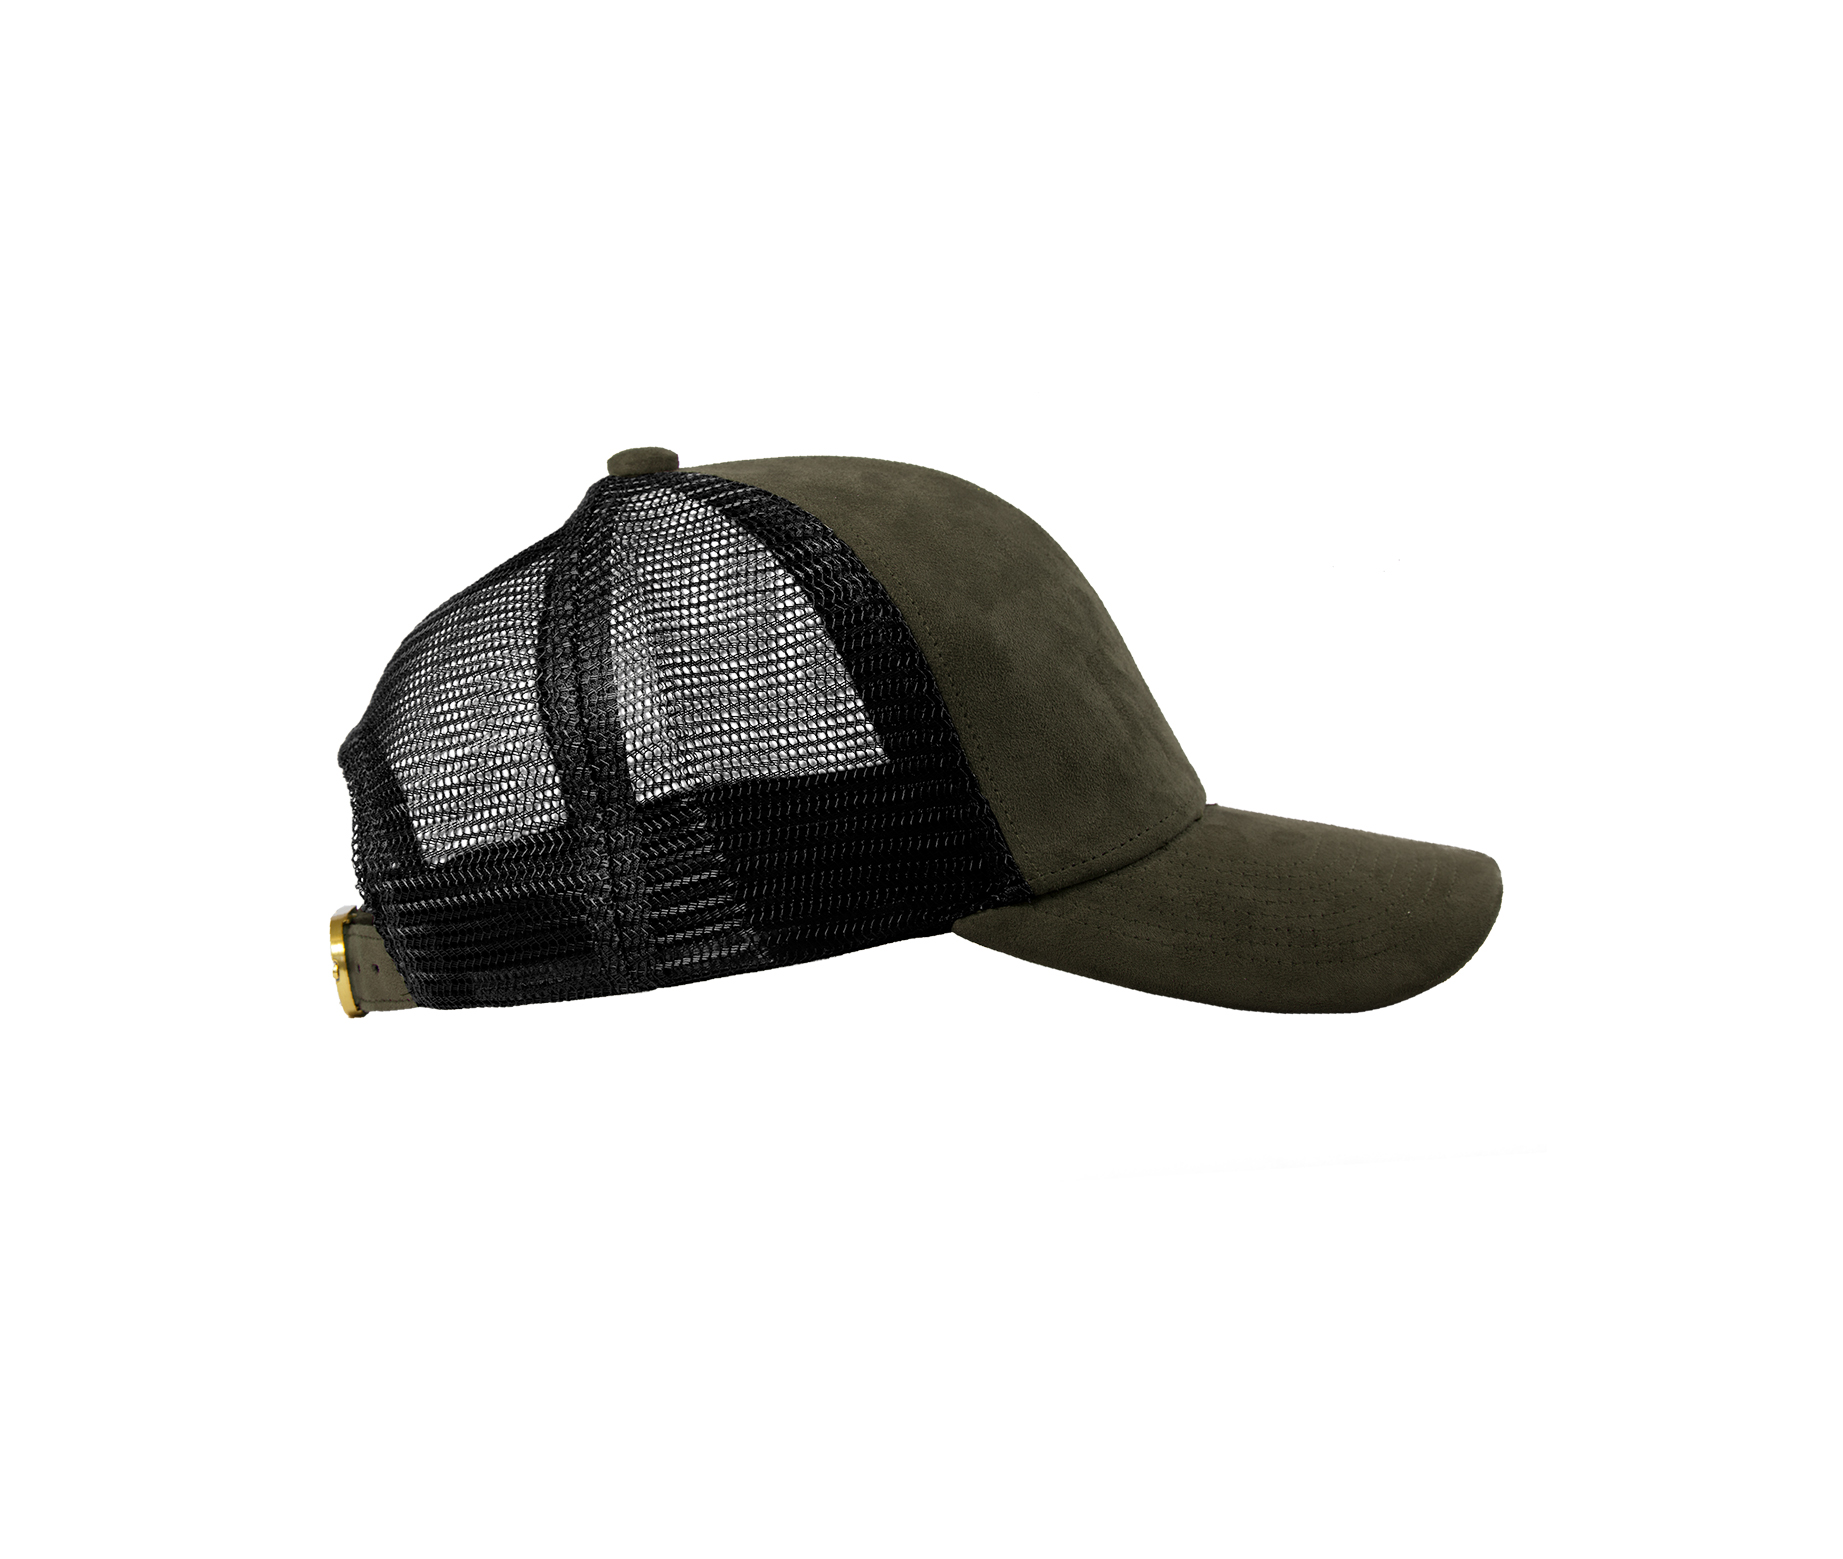 TRUCKER CAP OLIVE SUEDE SIDE